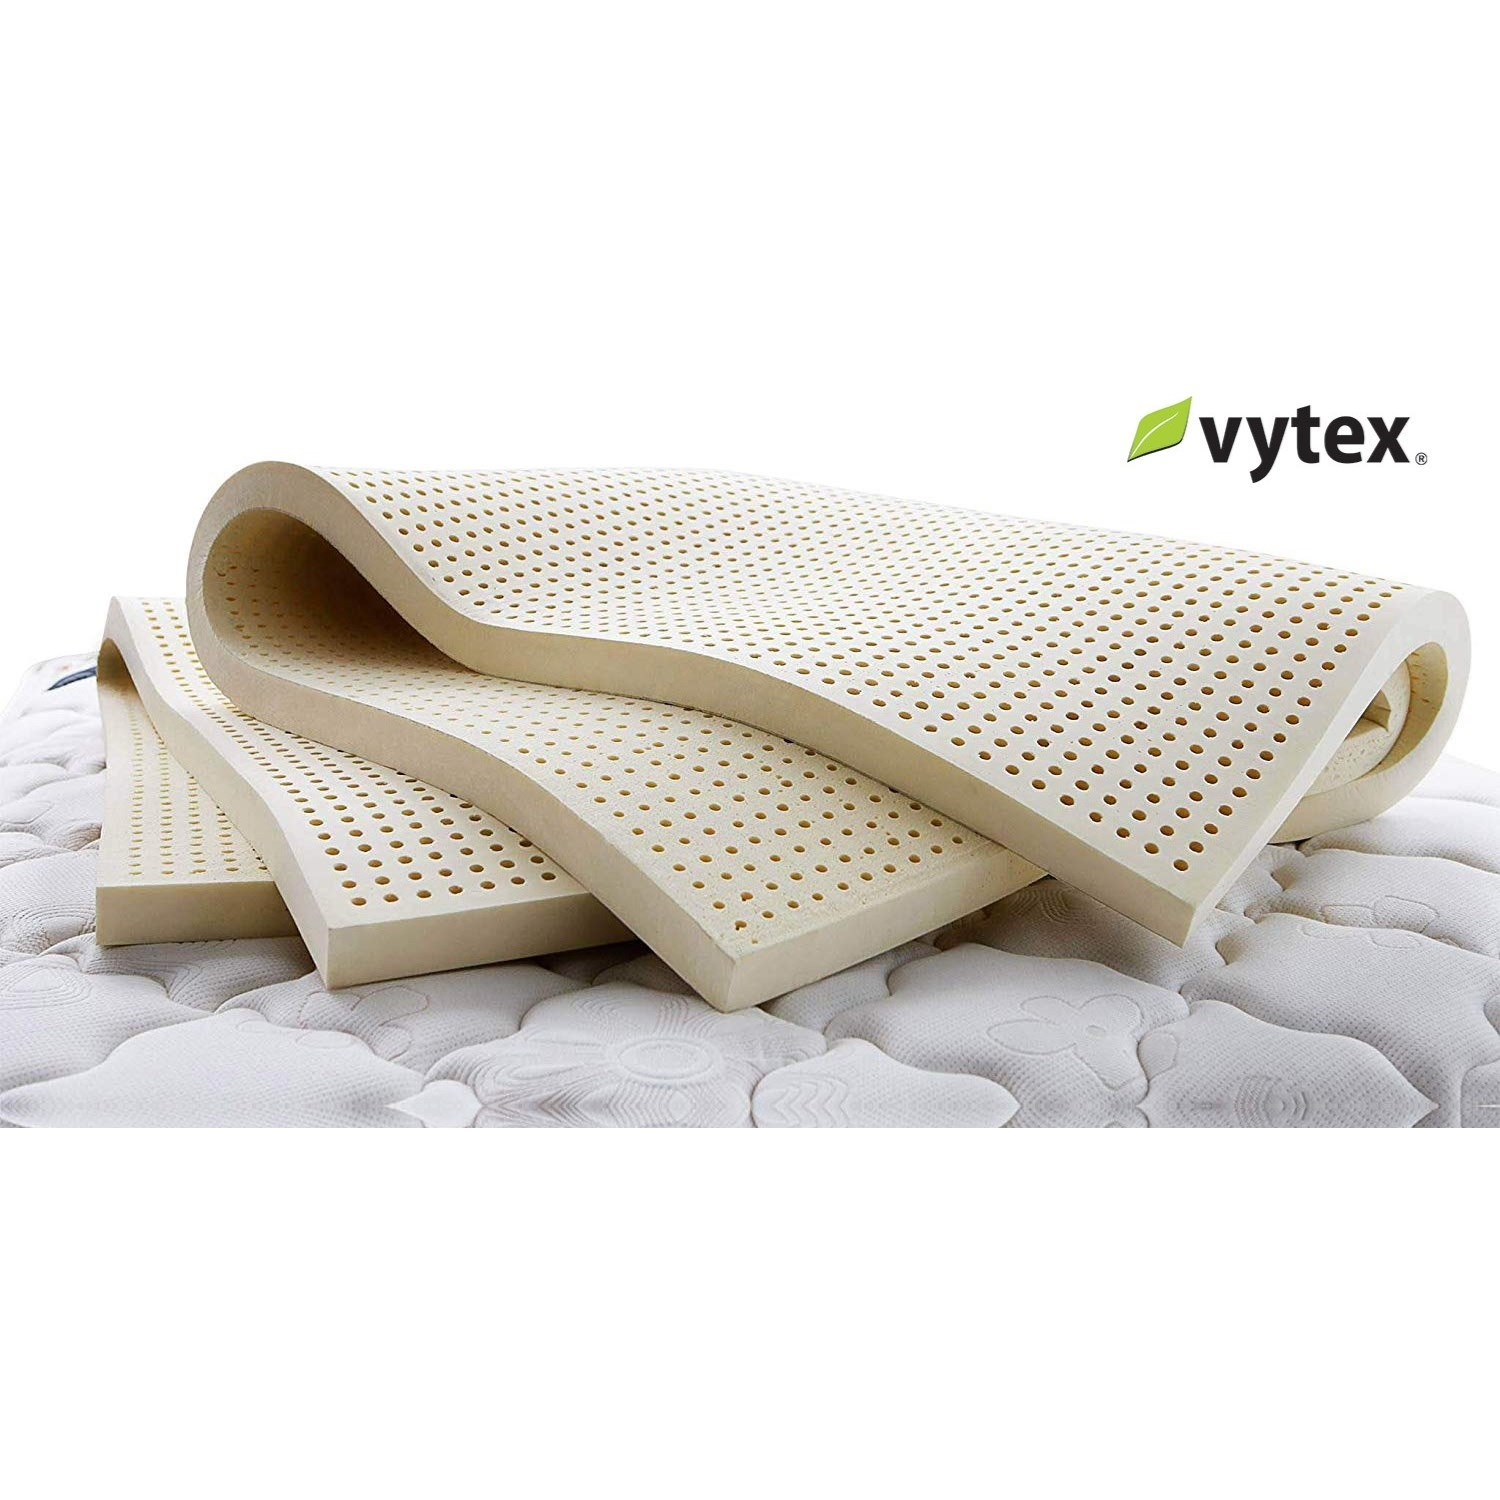 "Vytex Mattress Toppers - Firm Full 1"" Firm Latex Mattress Topper by Vytex at Rotmans"